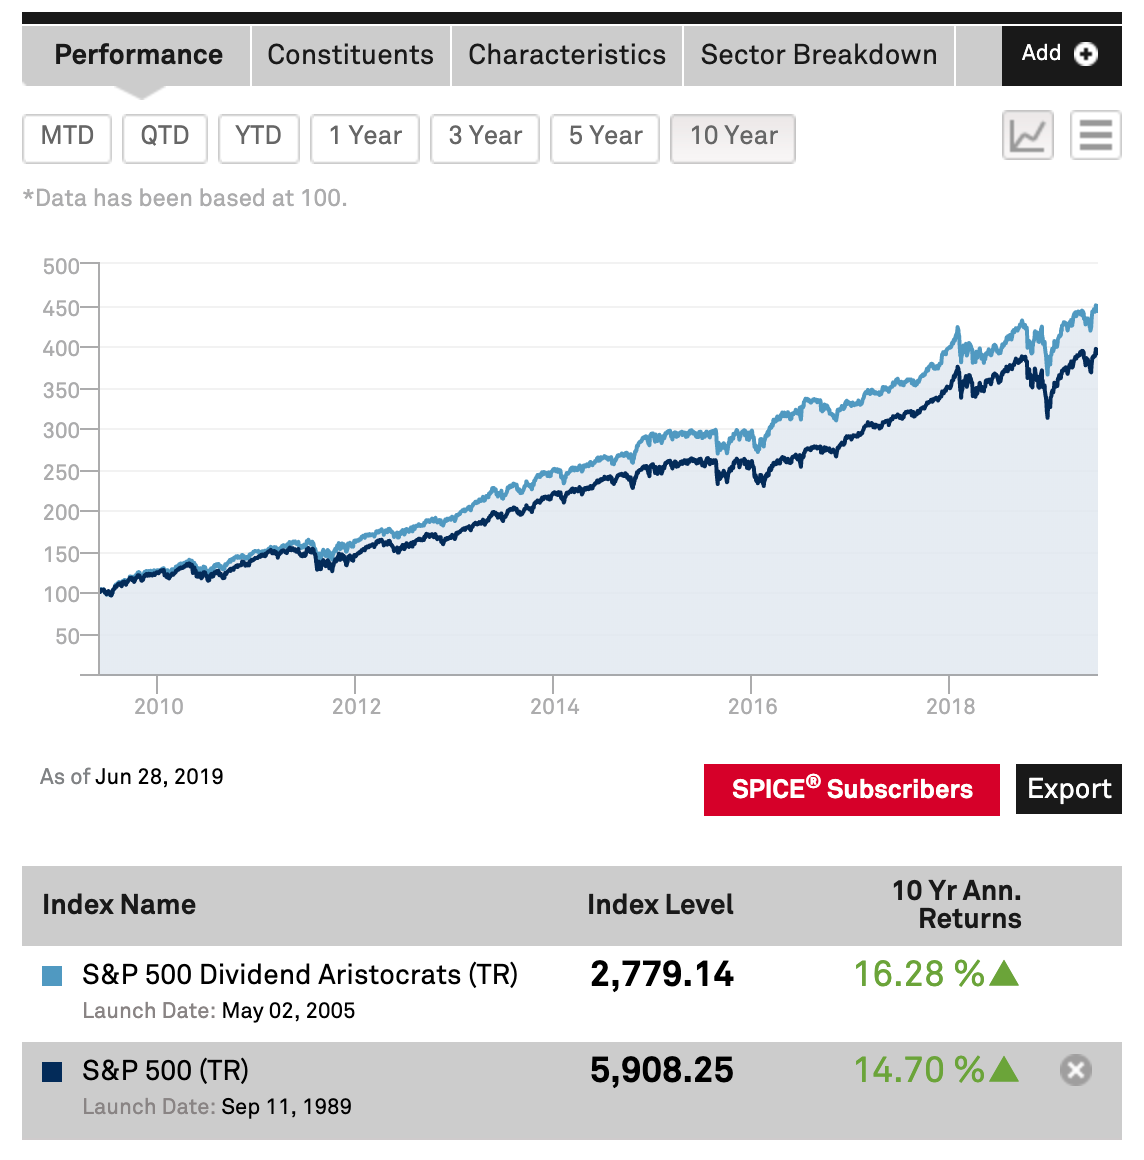 Finding The Most Undervalued Dividend Aristocrats